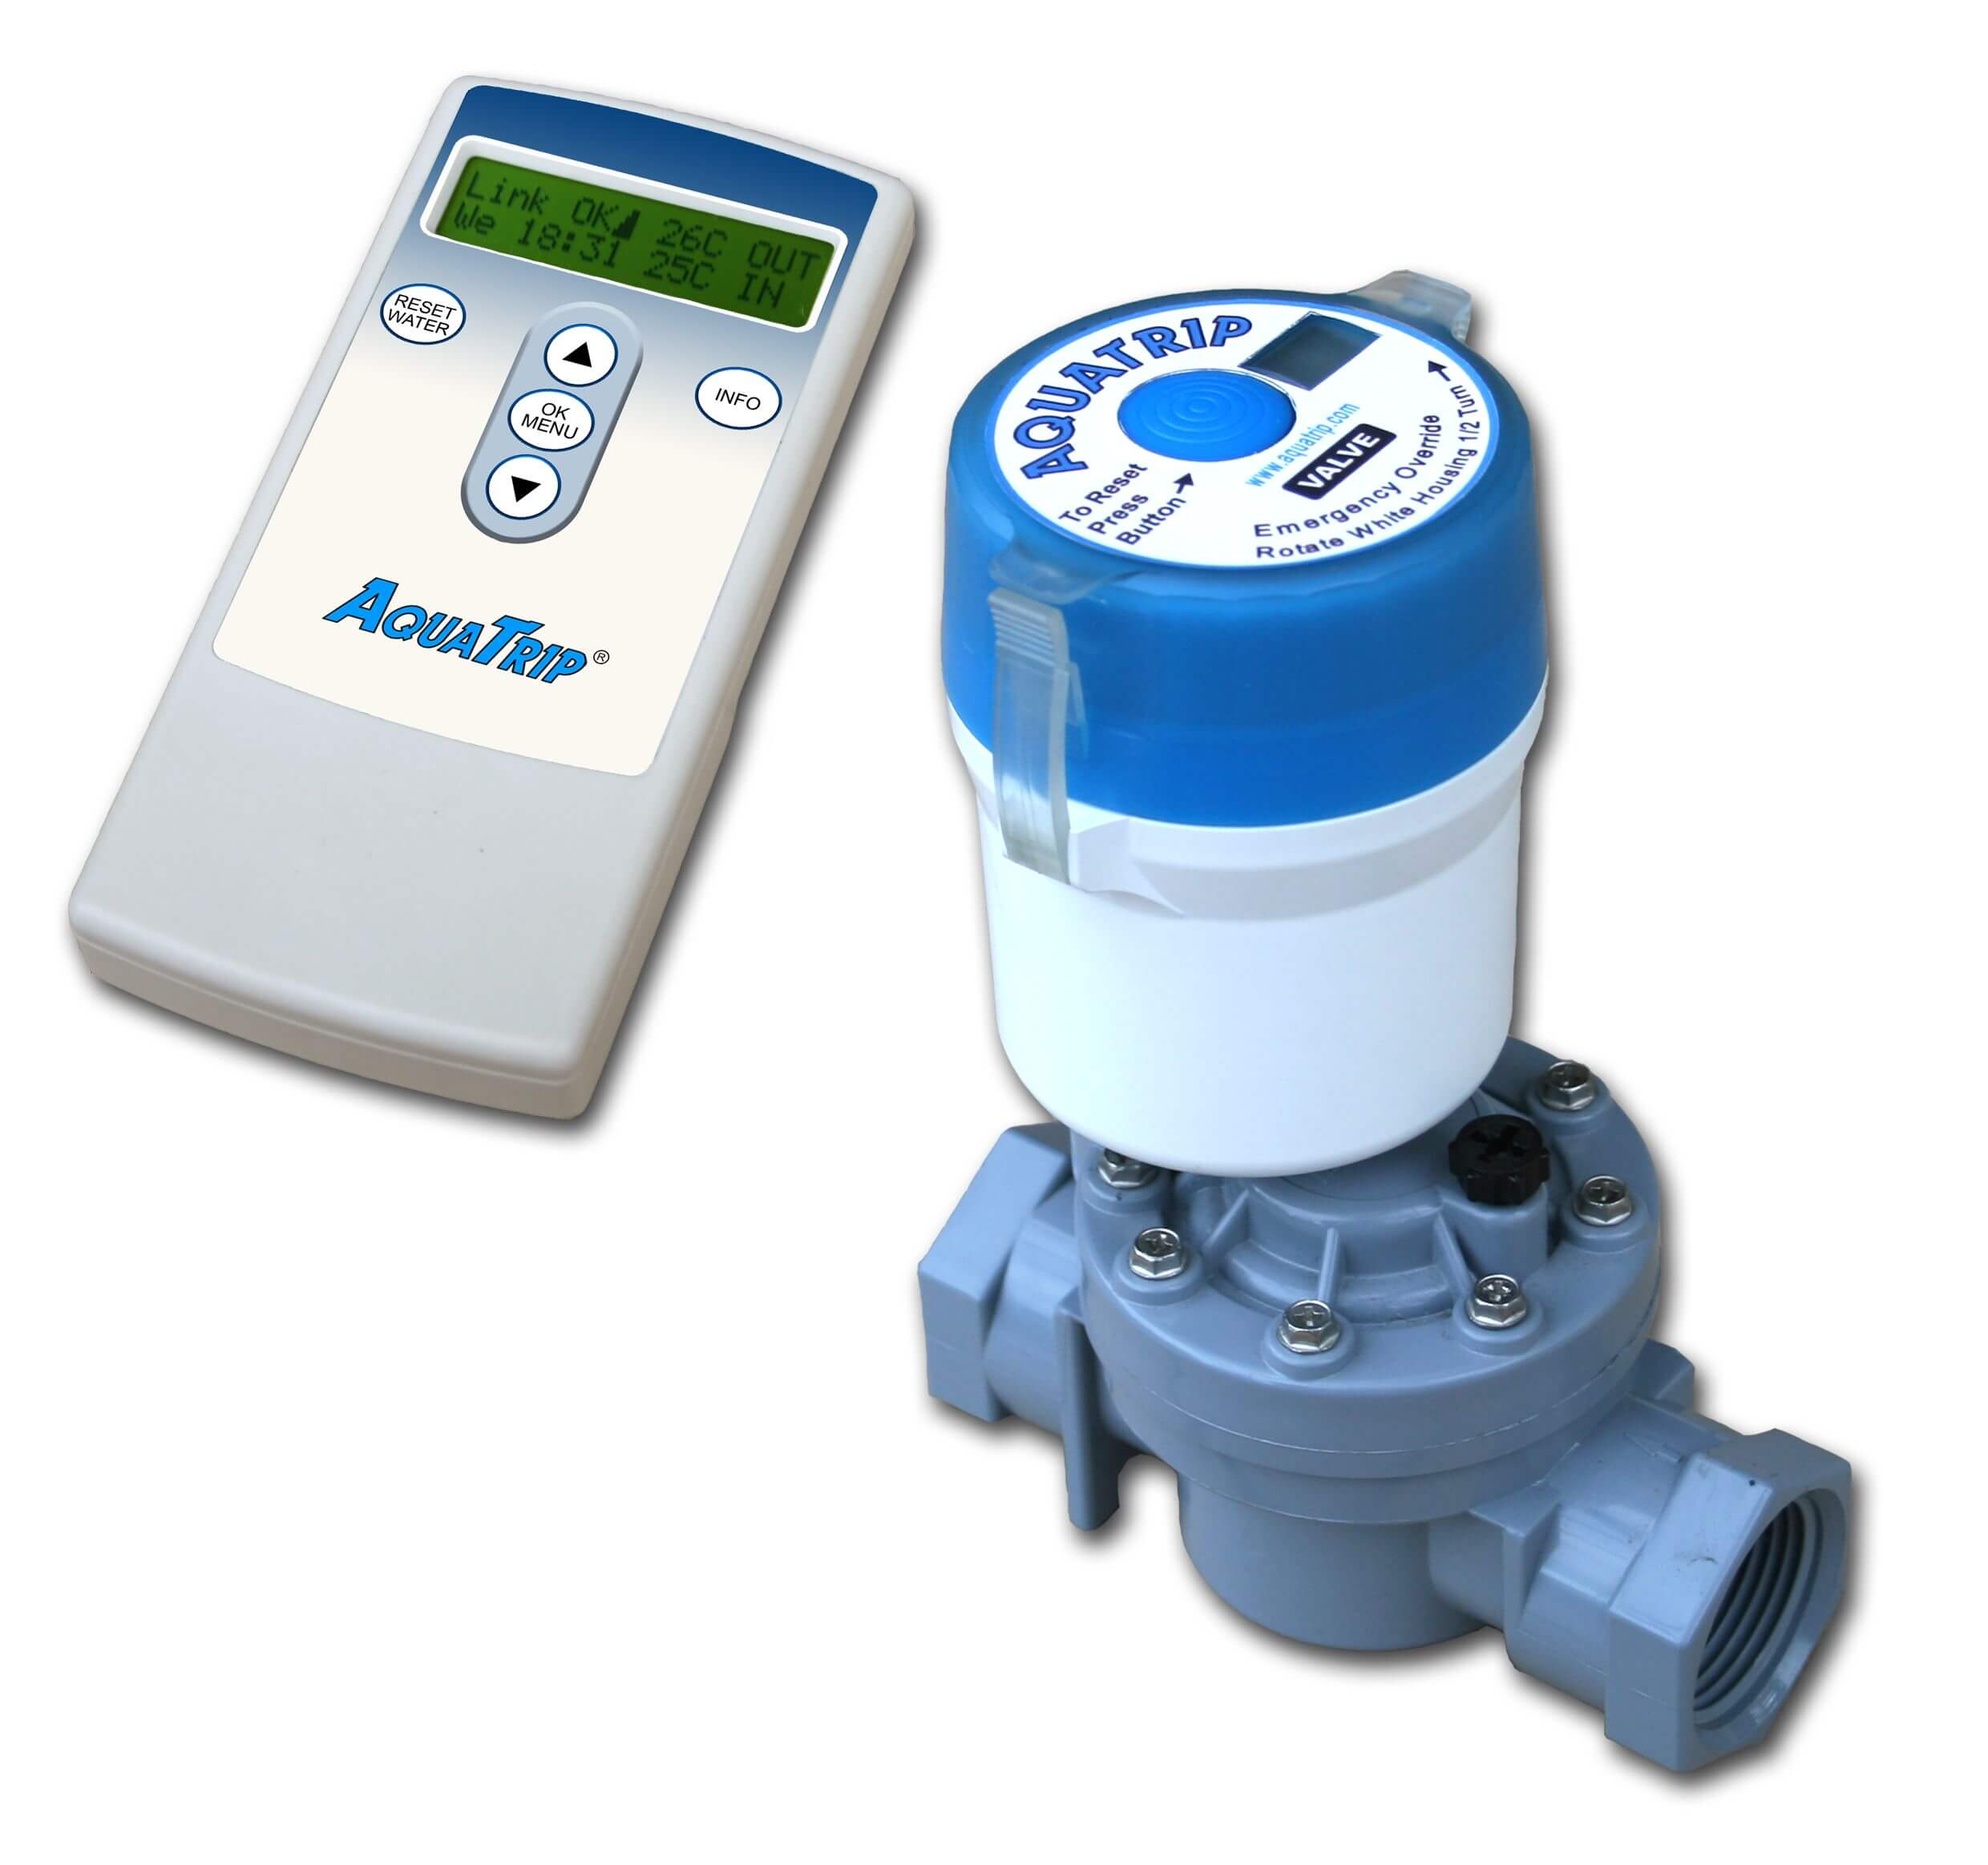 AquaTrip device